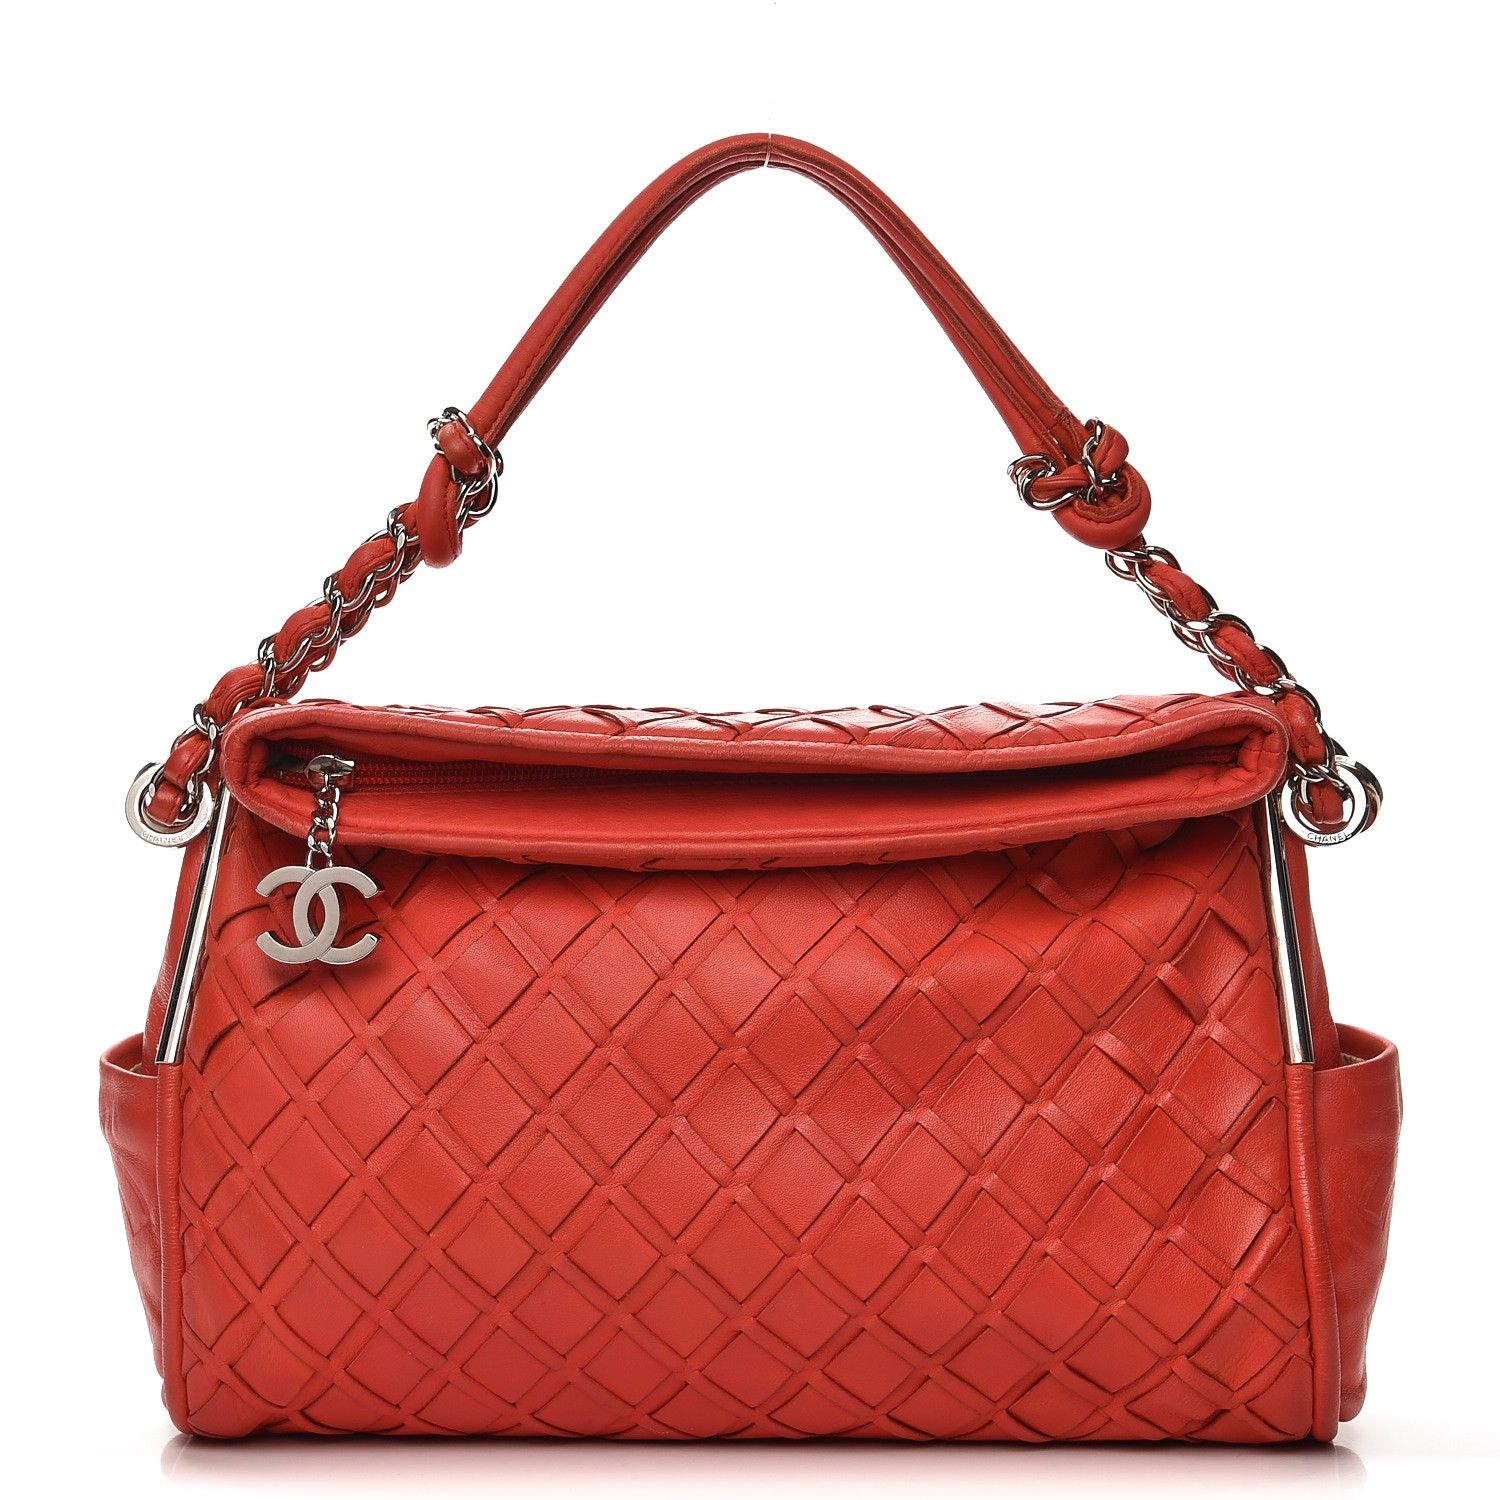 dbc0545c723cbb This is the stunning authentic CHANEL Lambskin Medium Ultimate Soft  Sombrero Hobo in Red. This